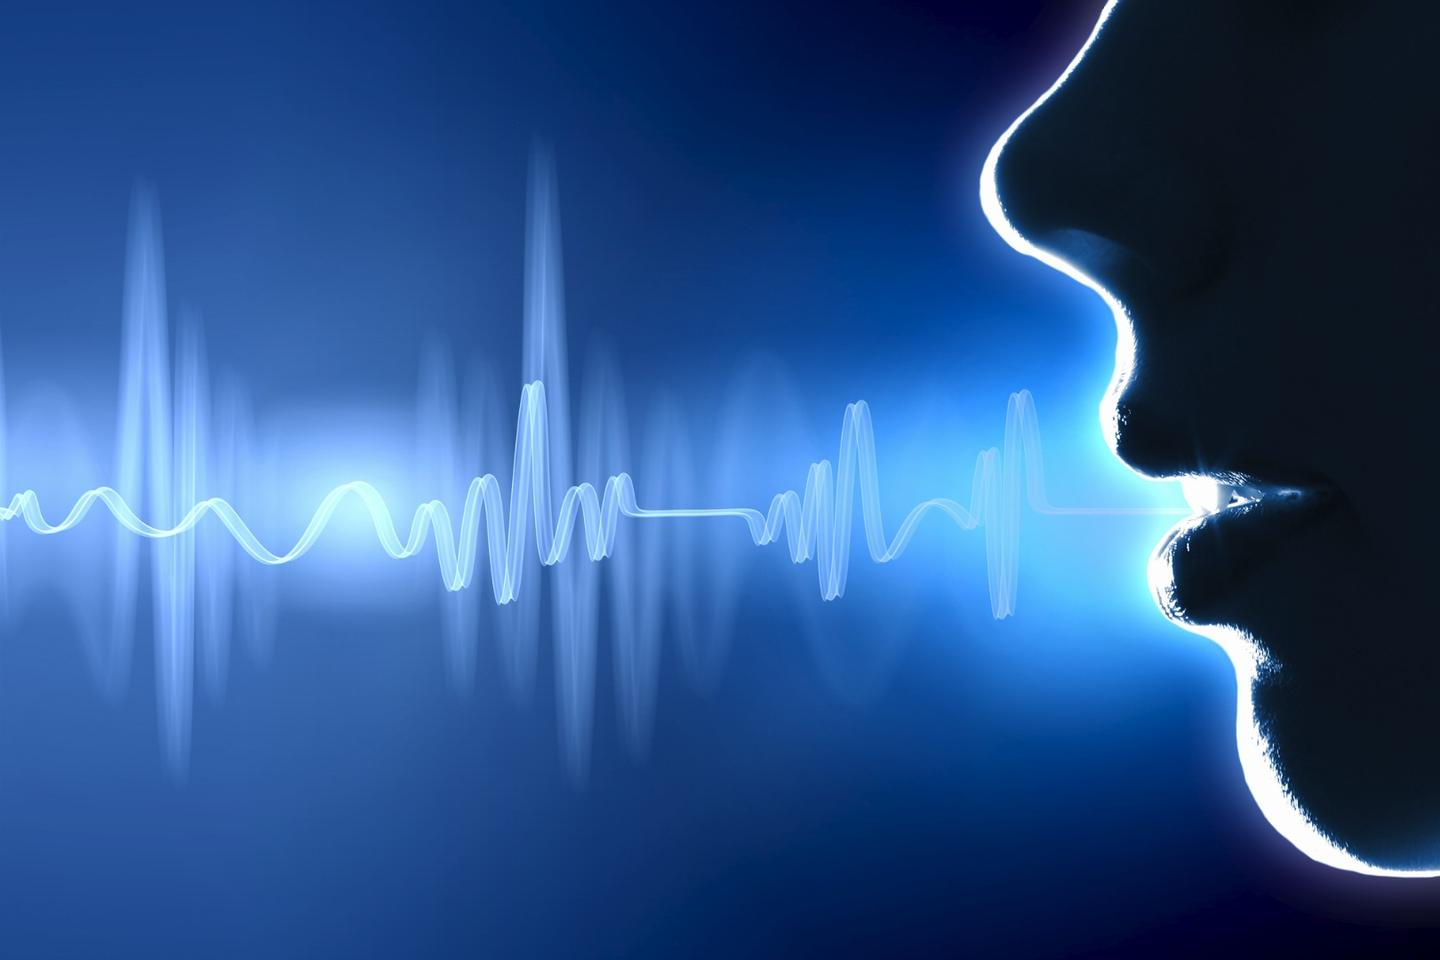 As voice-recognition devices become more prevalent, voice hacking will likely increase